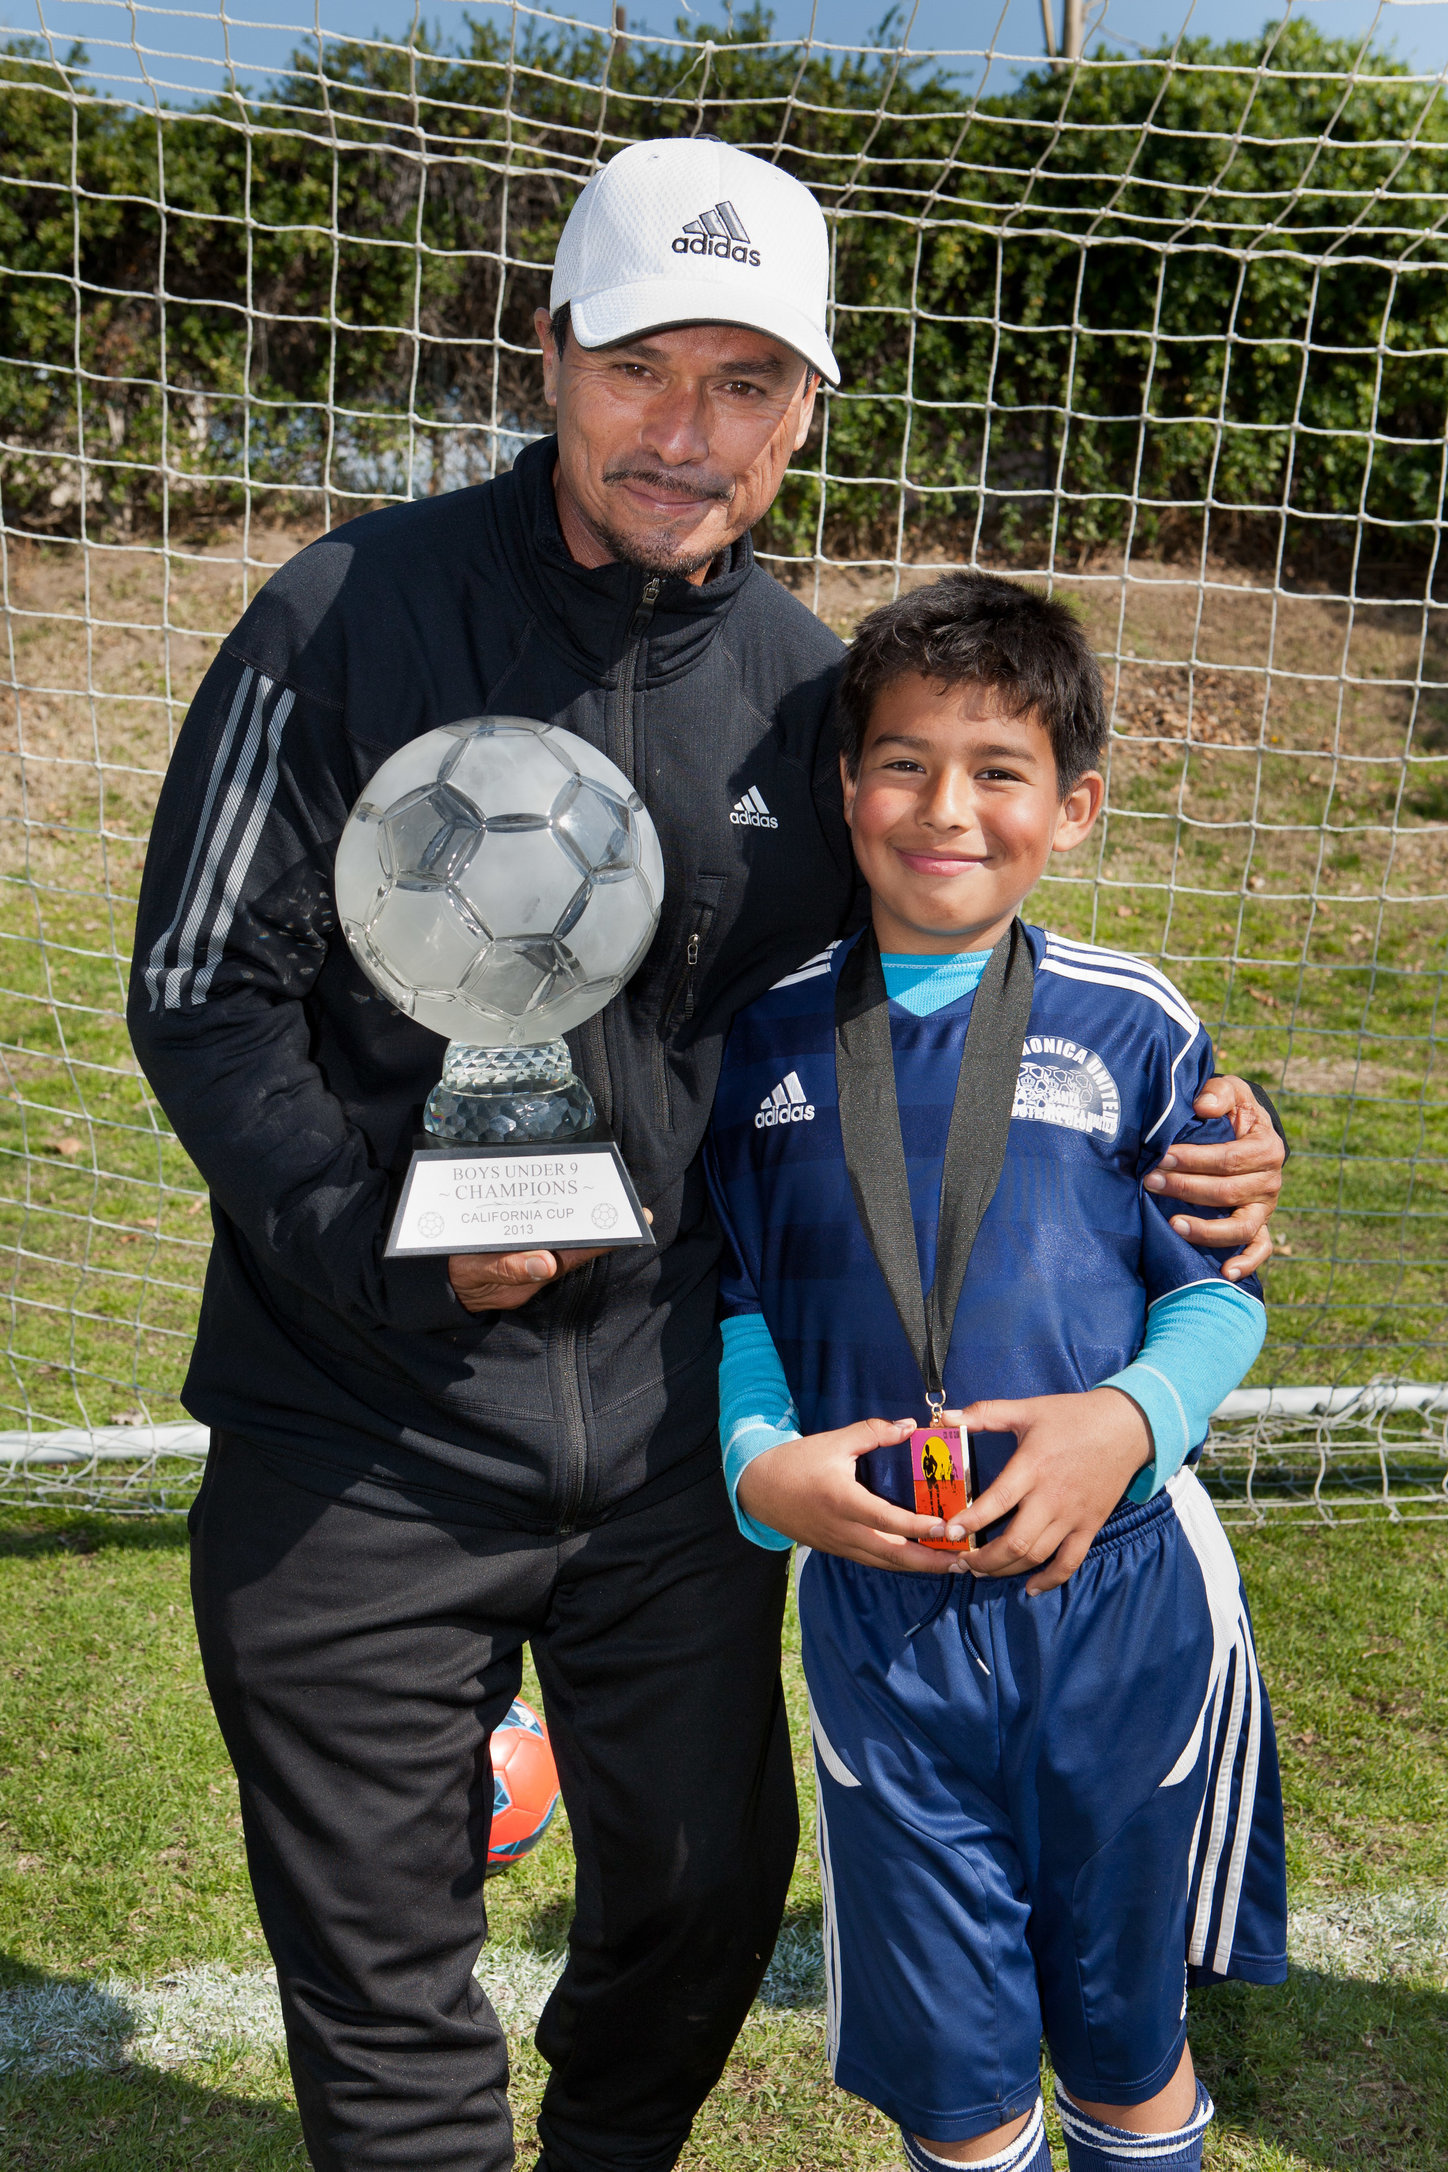 Coach Nico and Jaime Ayala